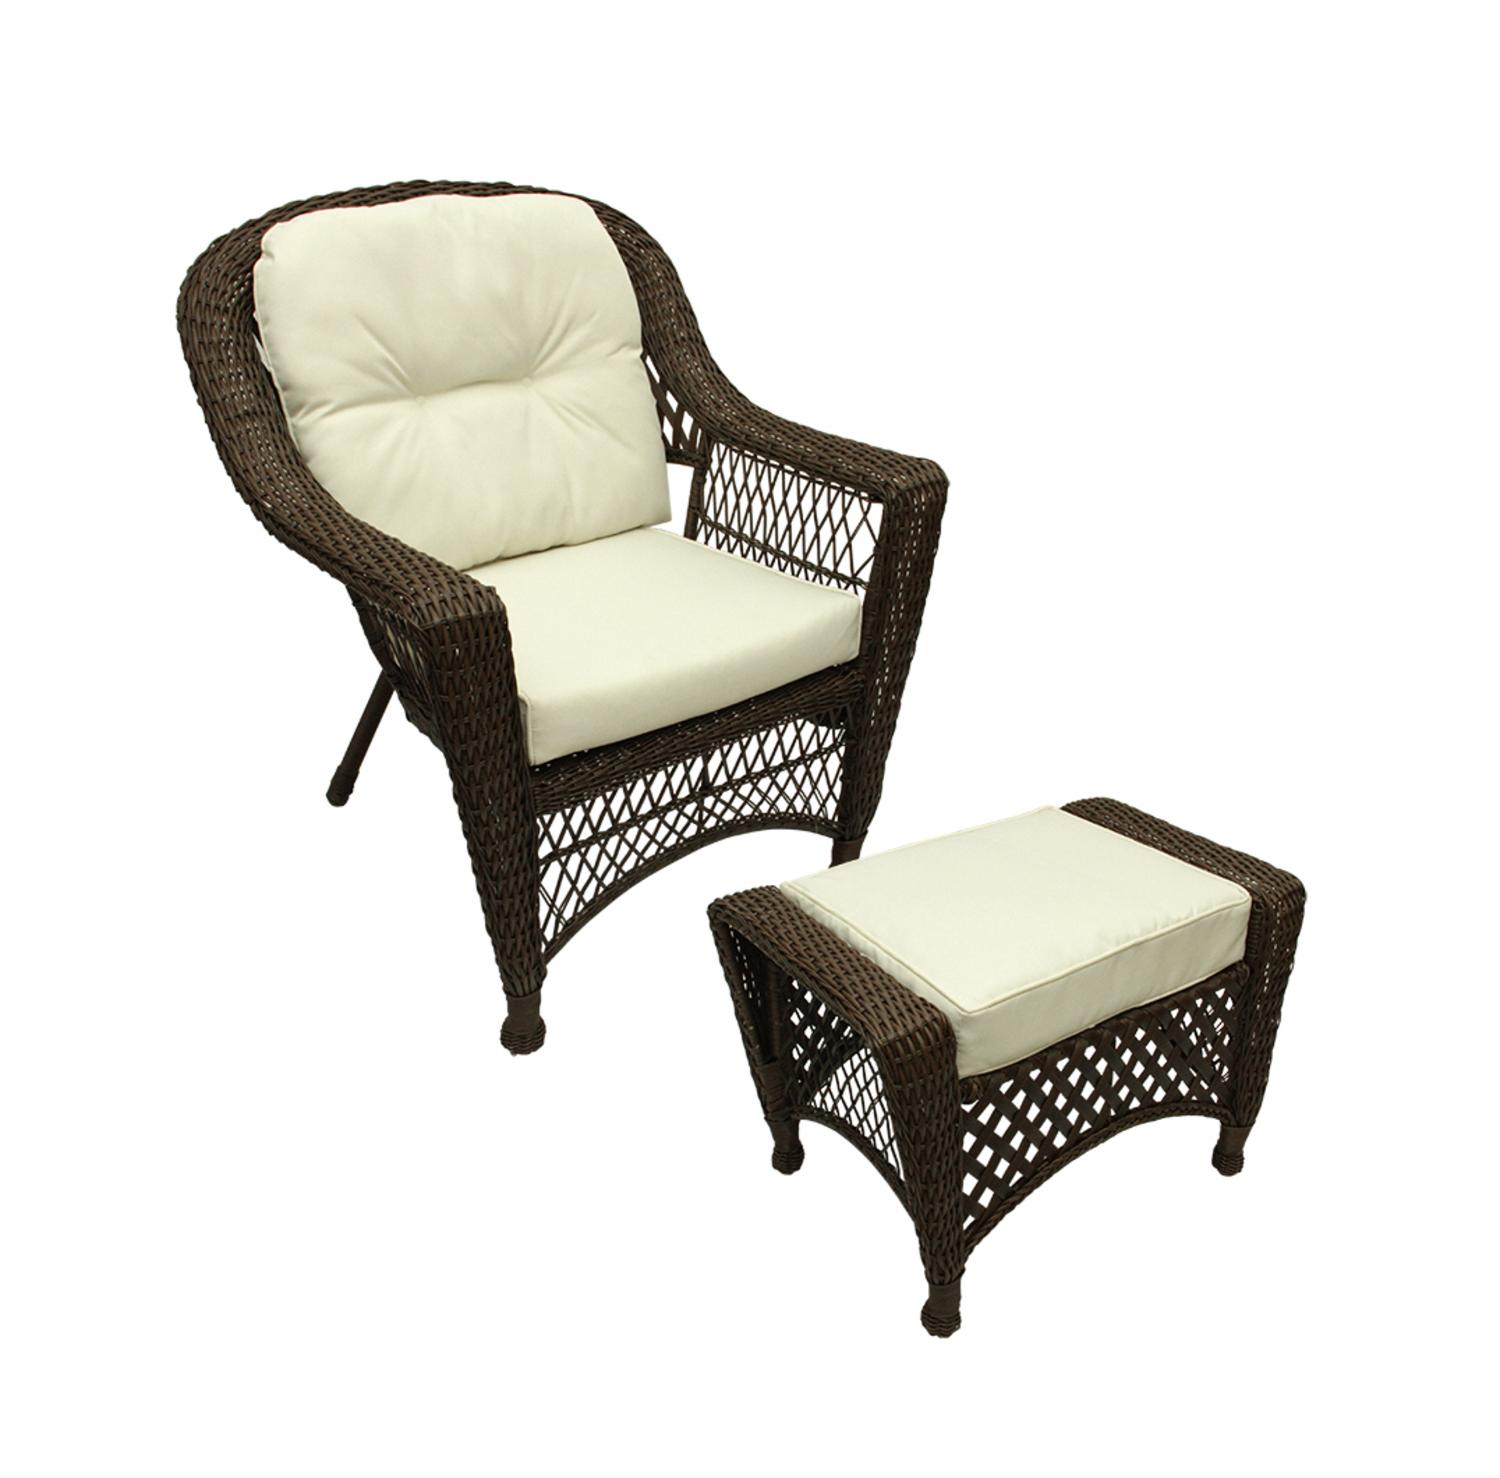 2 Pc Somerset Dark Brown Resin Wicker Patio Chair Ottoman Furniture Set Cream Cushions Com